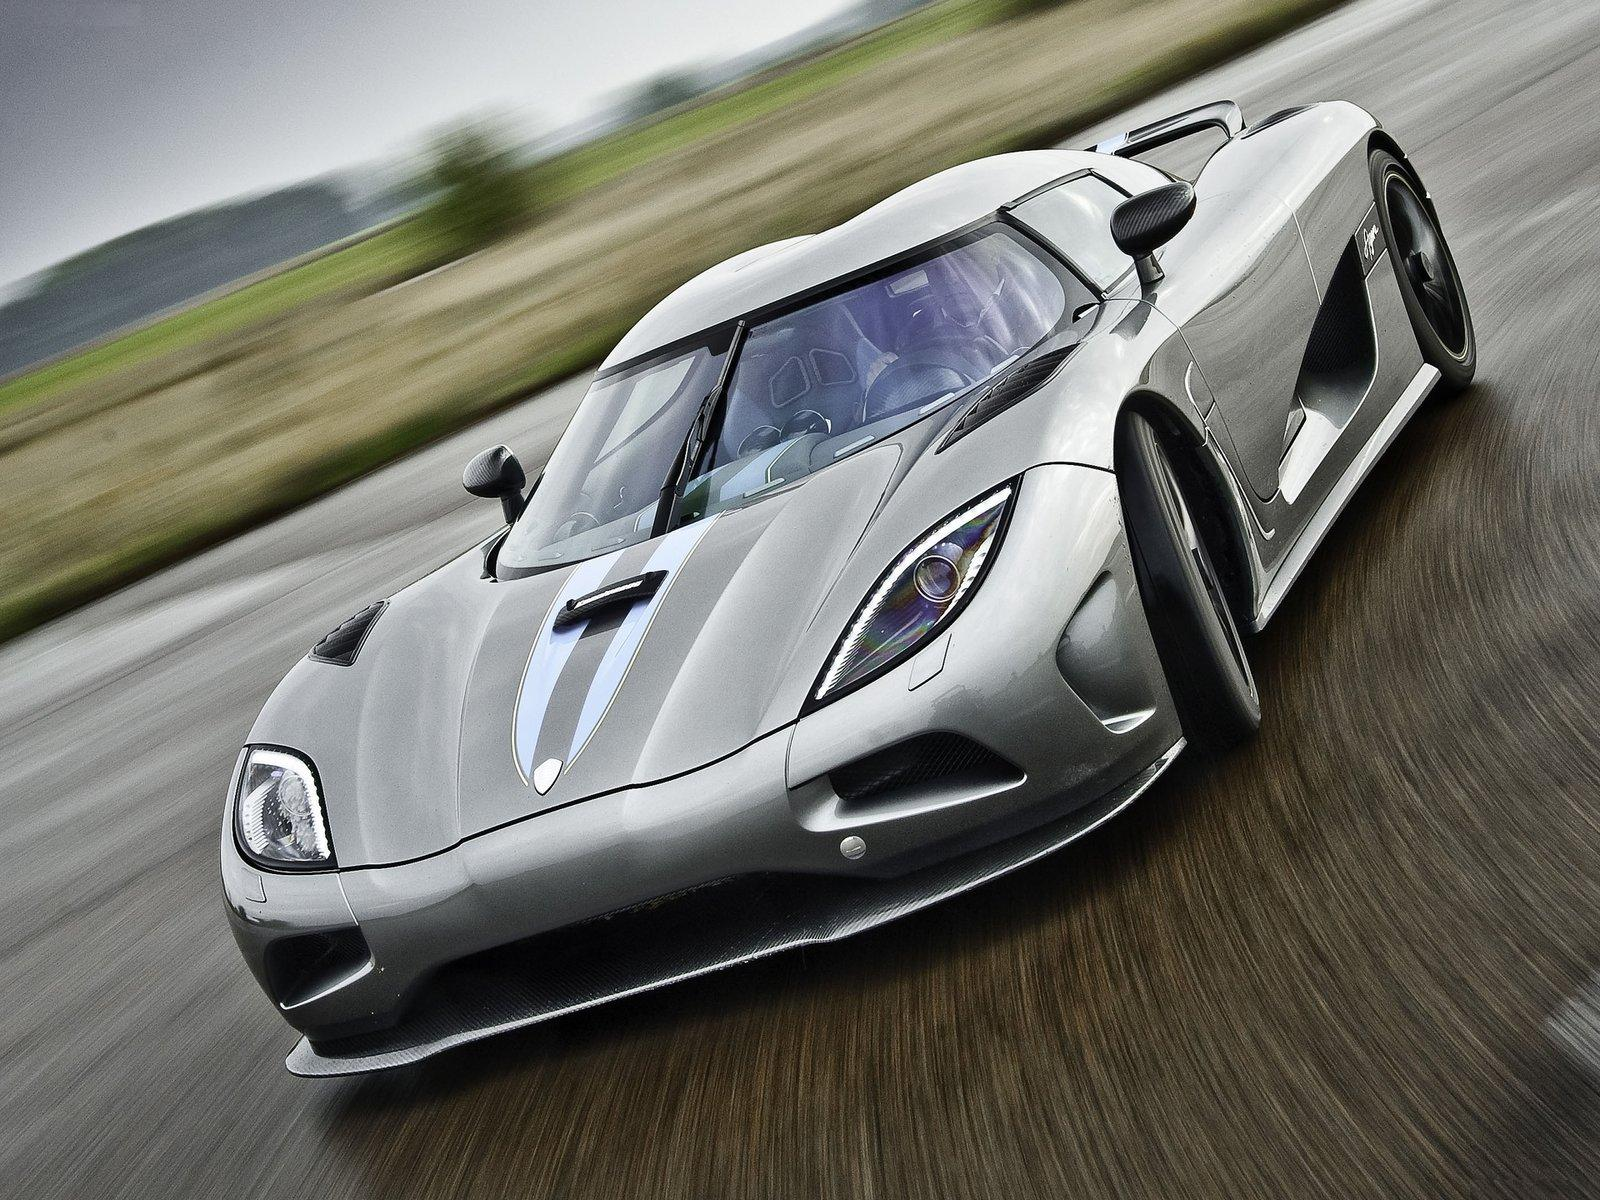 Koenigsegg Agera R Car Review And Wallpaper Koenigsegg Agera R